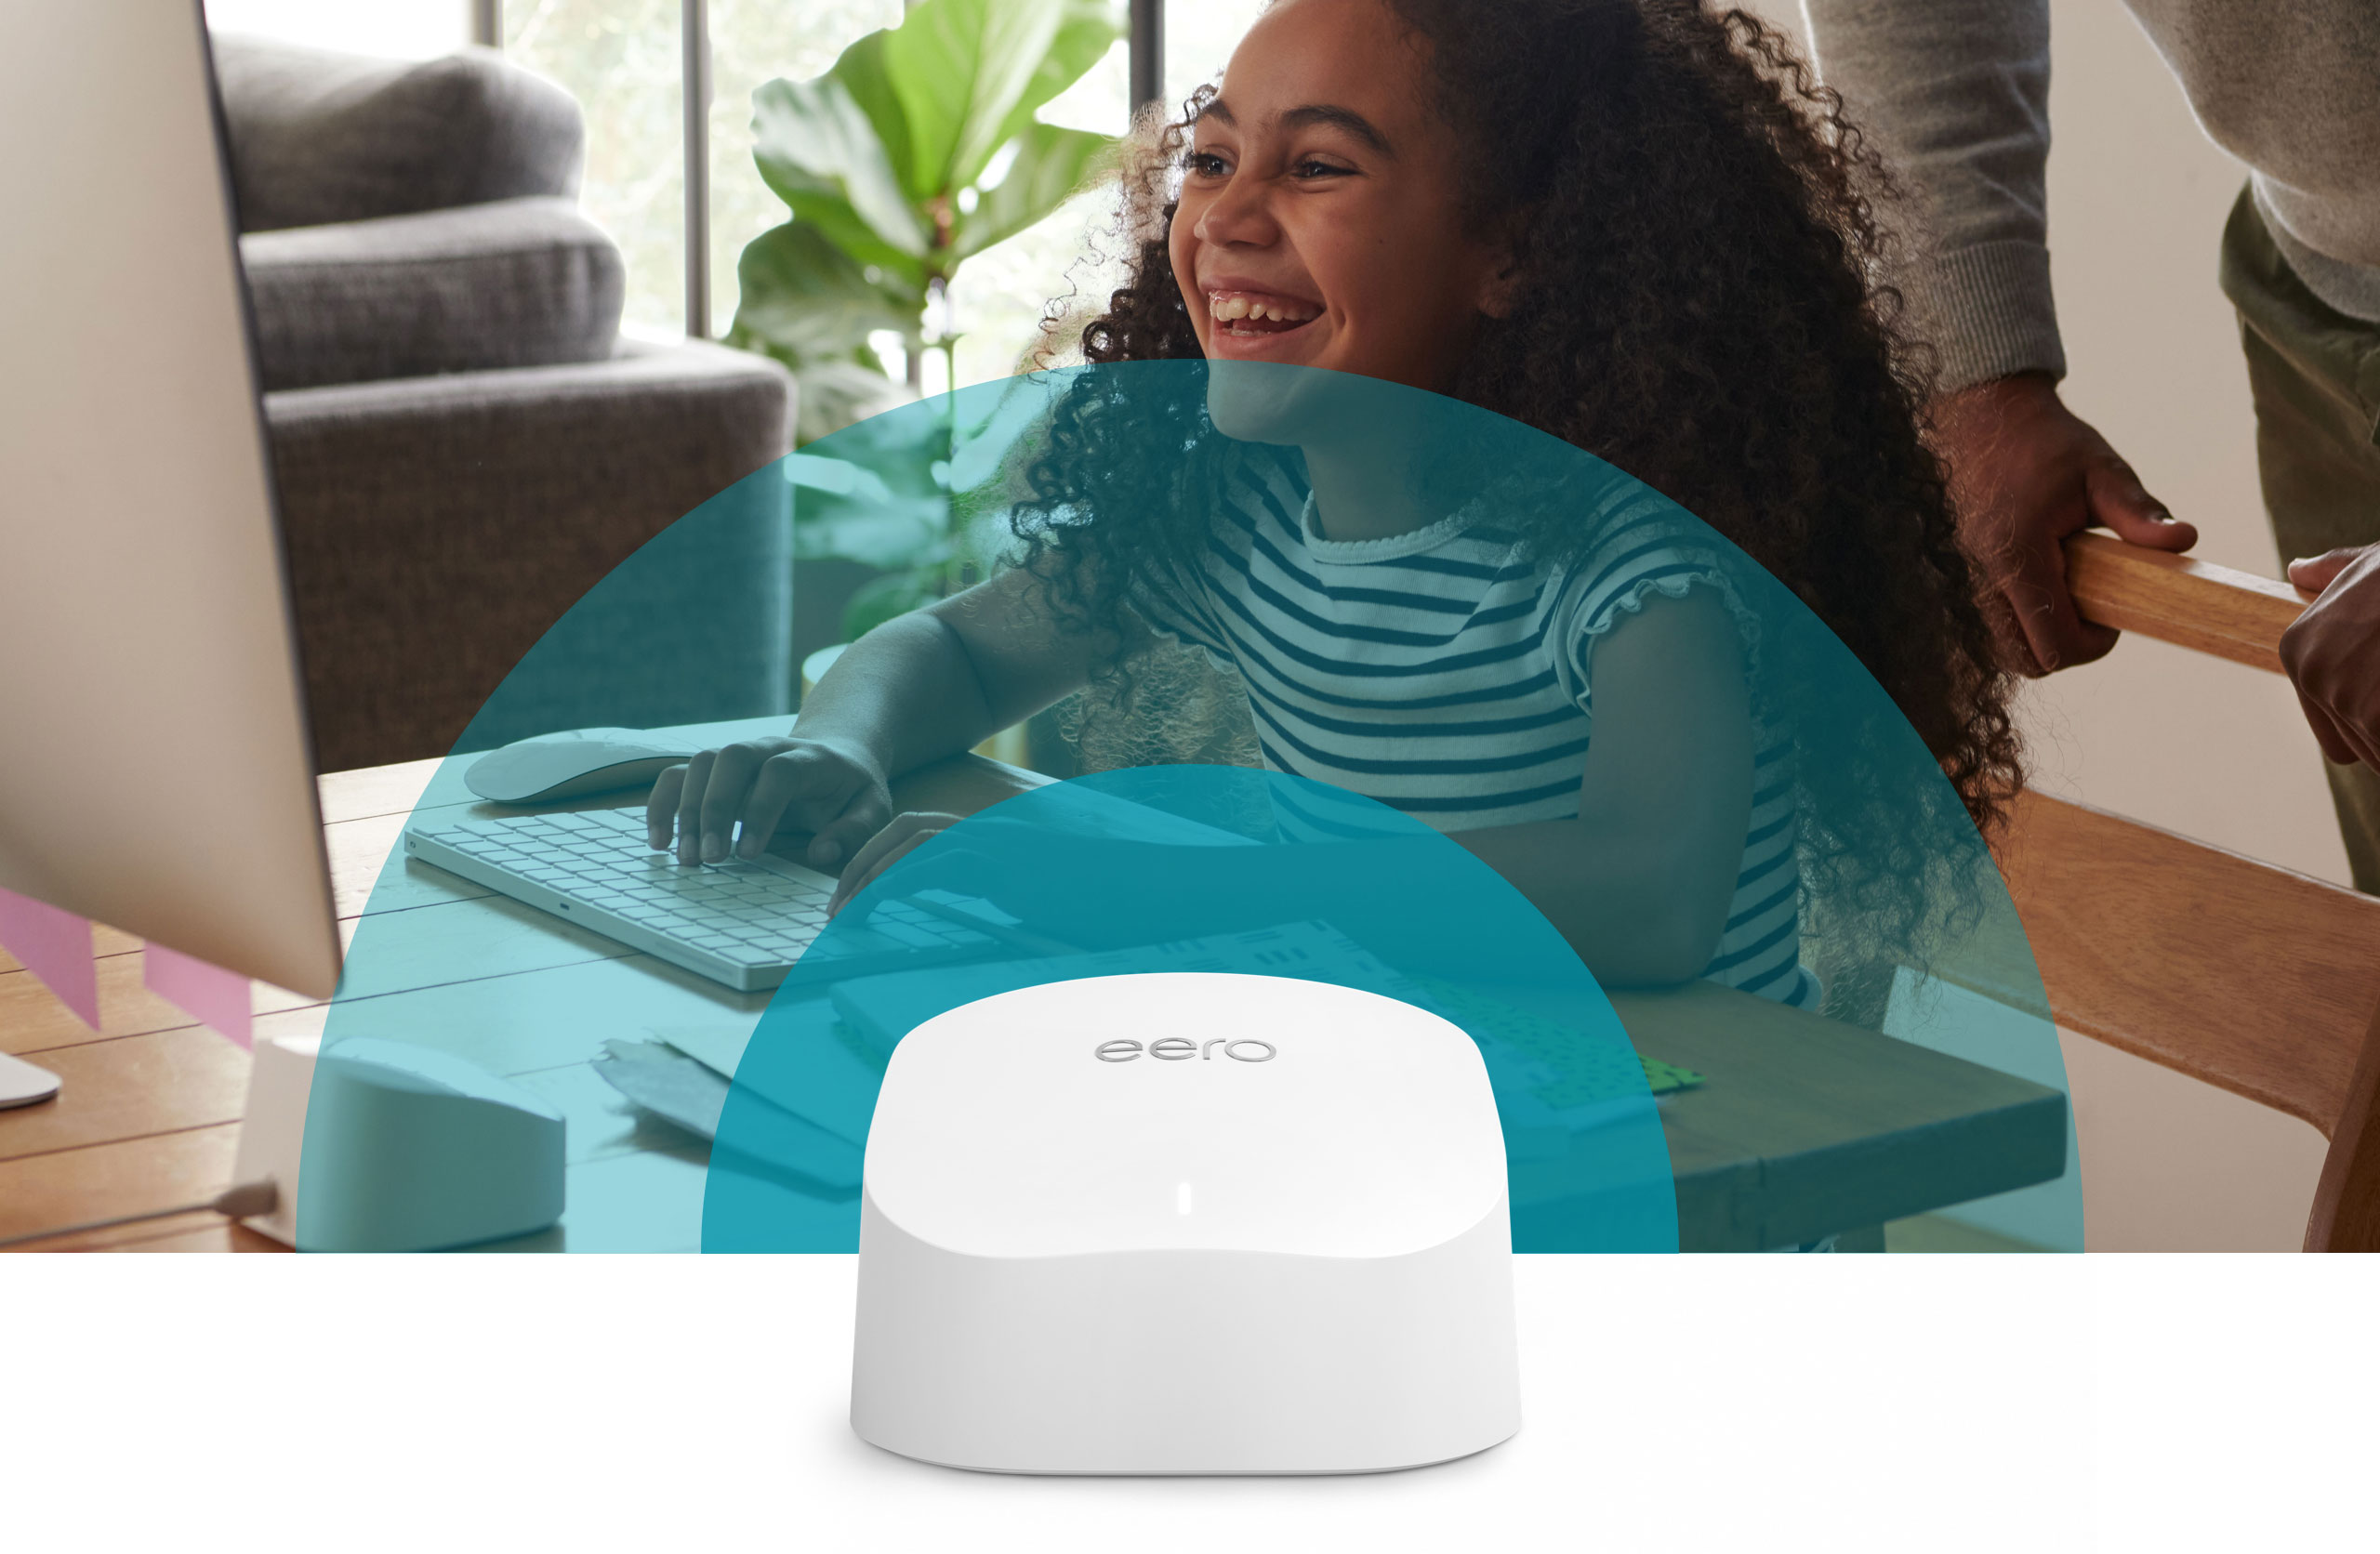 eero 6 at home